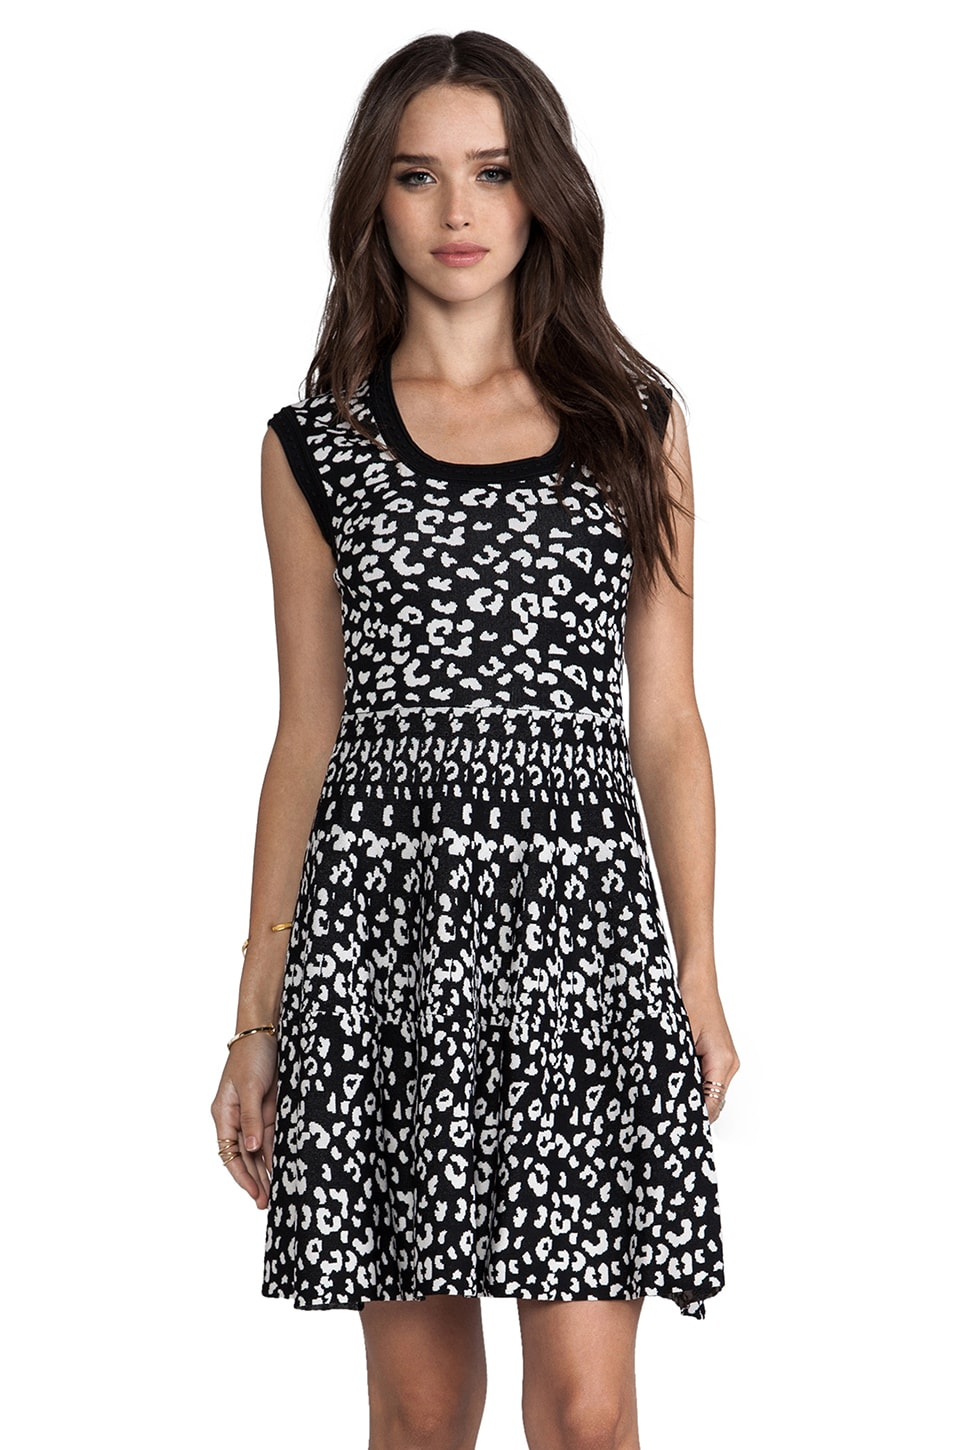 Rebecca Taylor Leopard Stretch Dress in Black/Shady